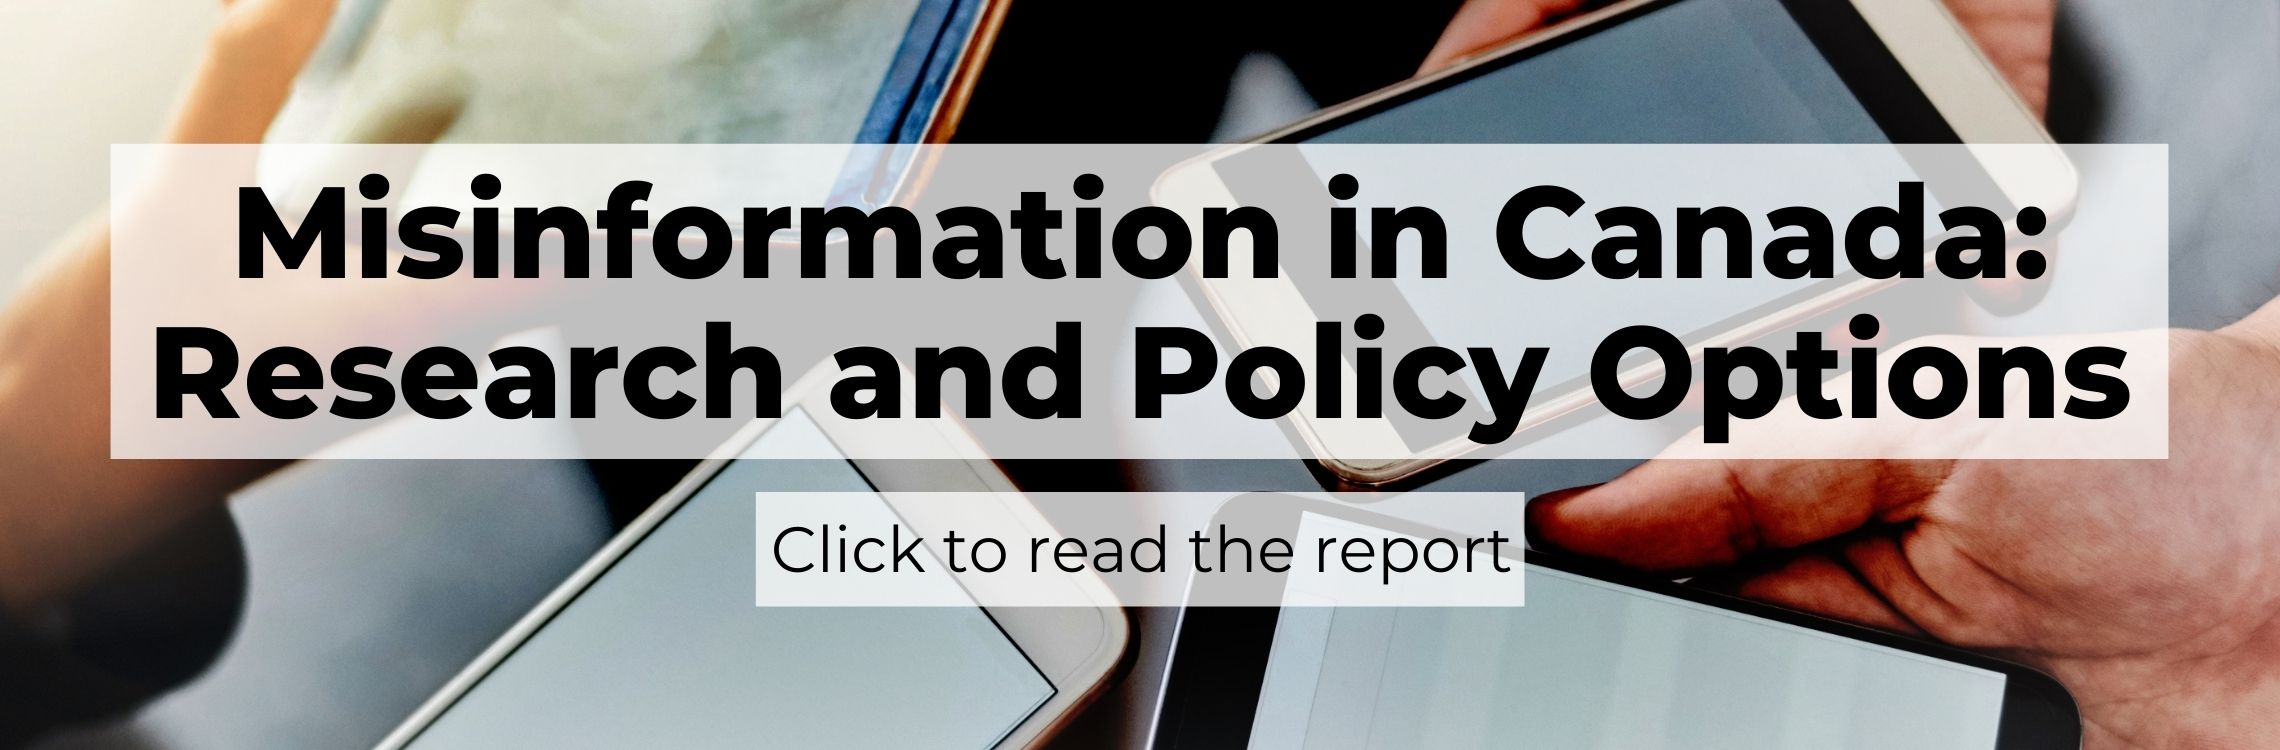 Misinformation in Canada: Research and Policy Options. Click to read the report